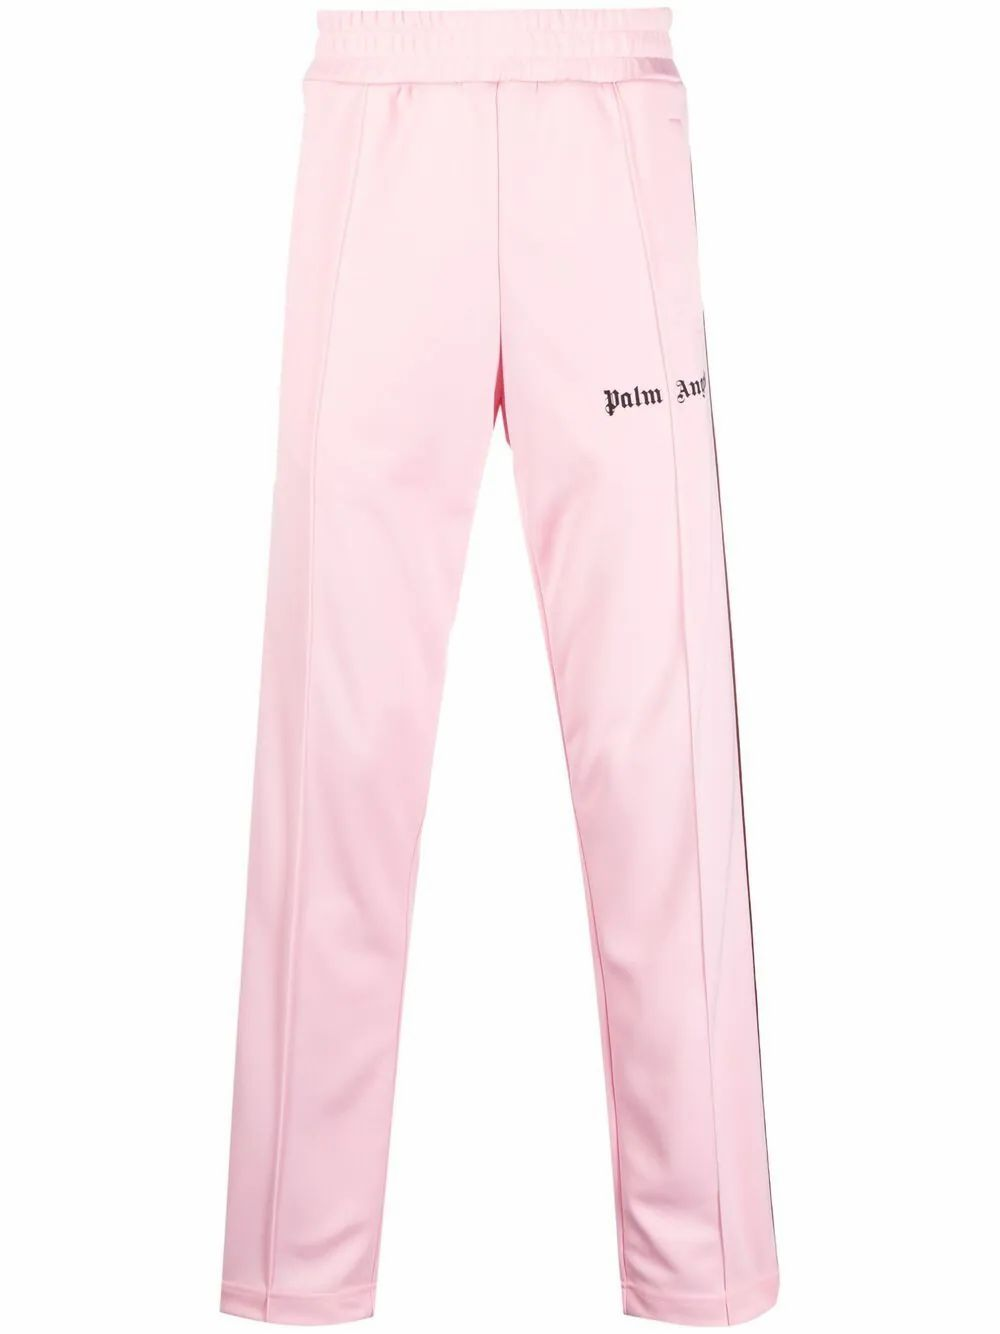 Palm Angels Track pants PALM ANGELS MEN'S PMCA007S21FAB0033028 PINK POLYESTER JOGGERS